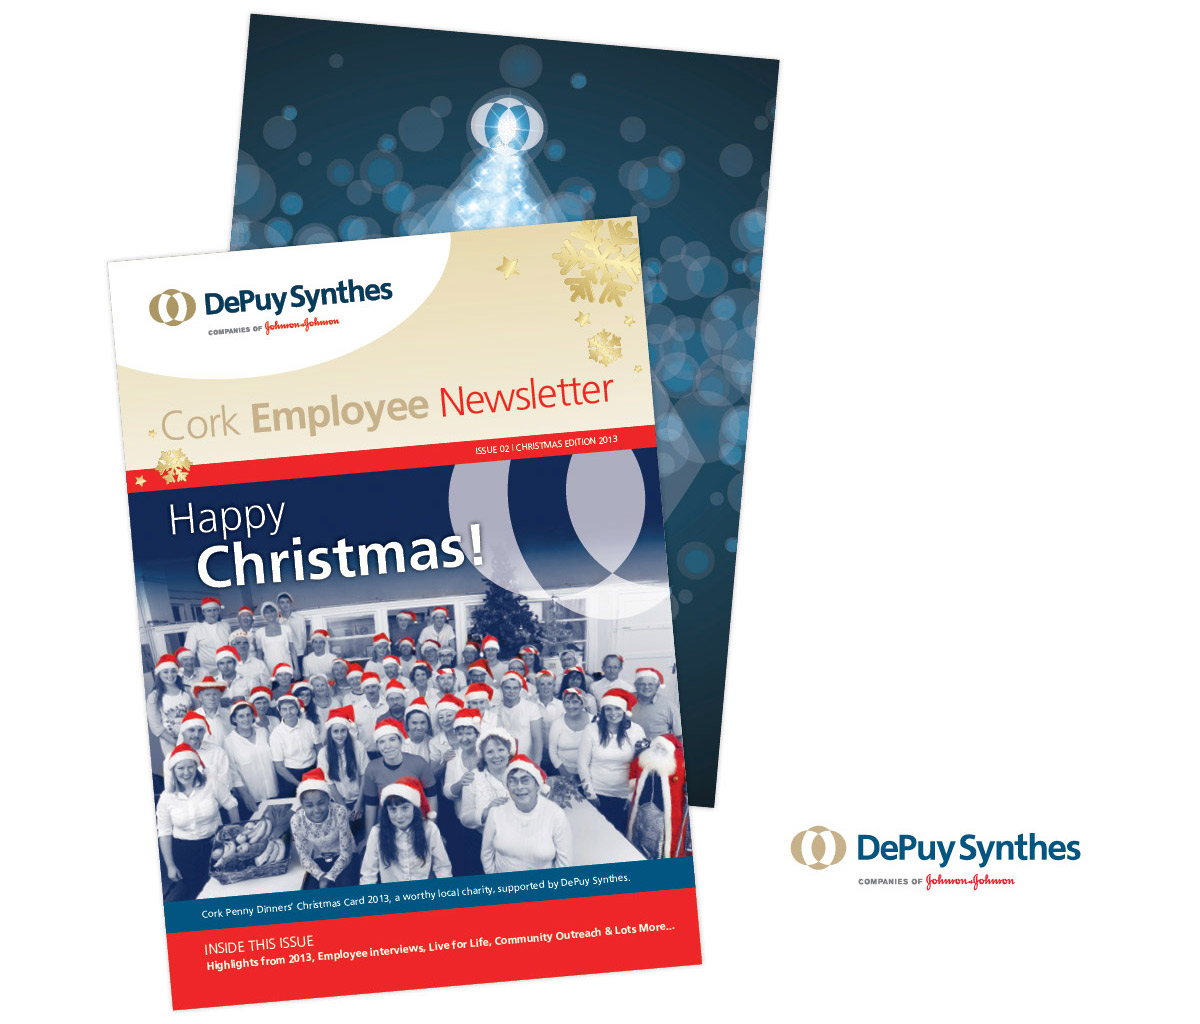 DePuySynthes_NewsletterXmas13.jpg